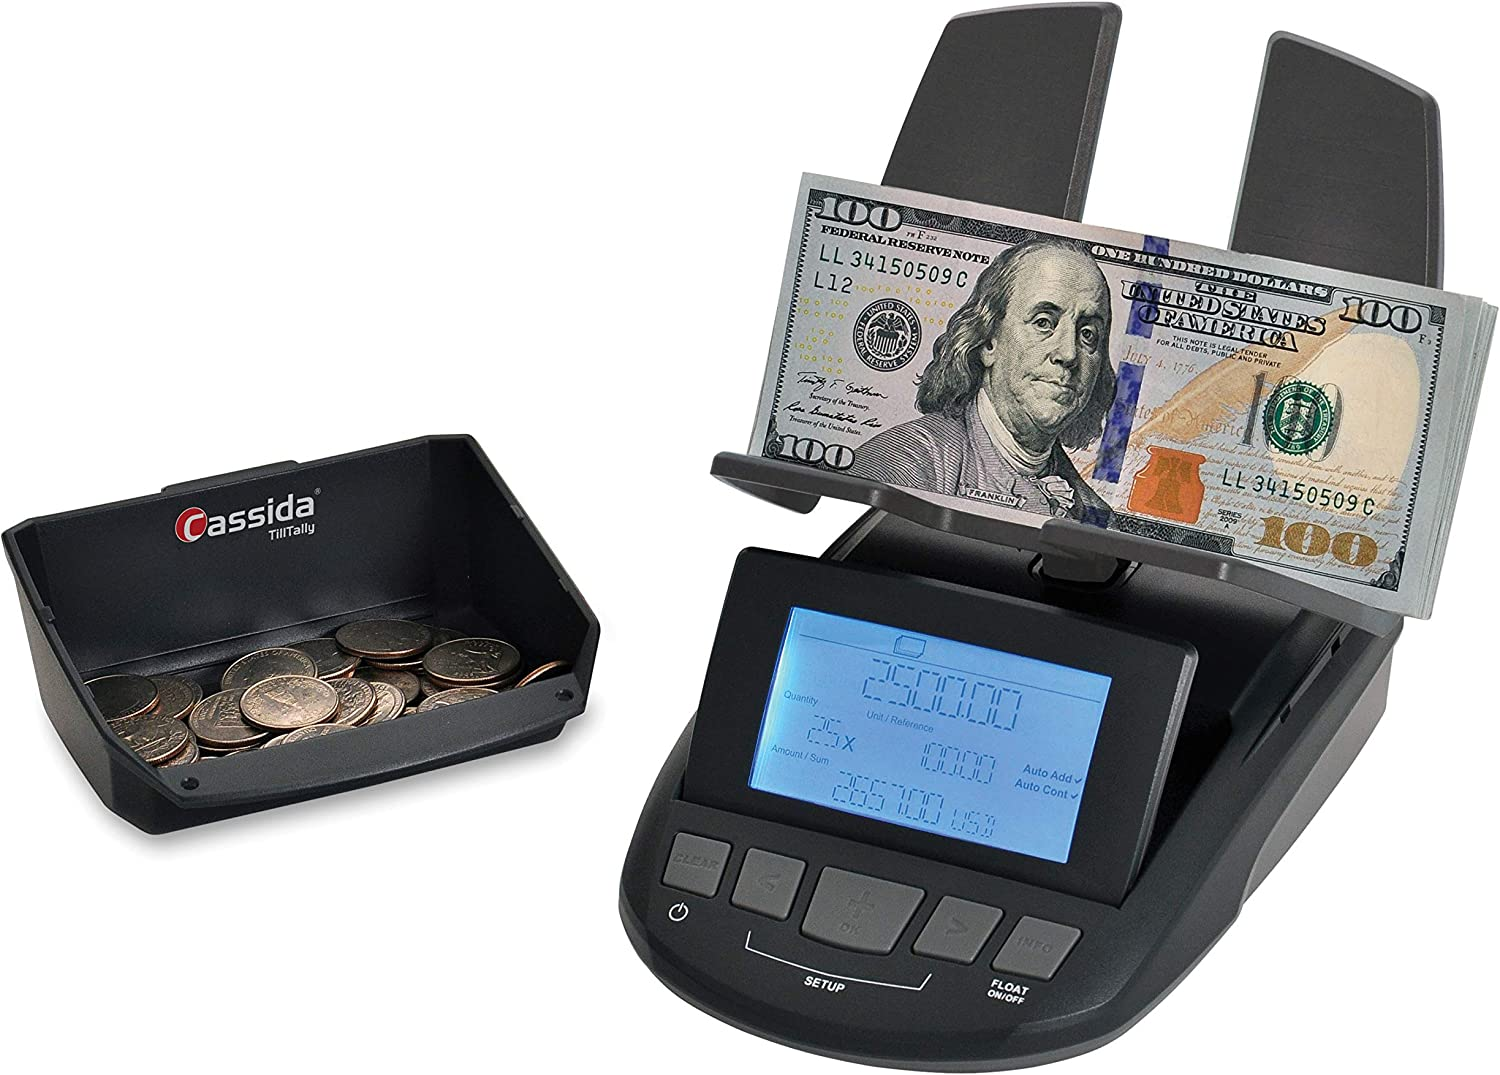 Cassida Till Tally Professional & Portable Money Counting Scale Coin, Rolls  & Bill Counter with Value Count, Float Function, Printing Capabilities and